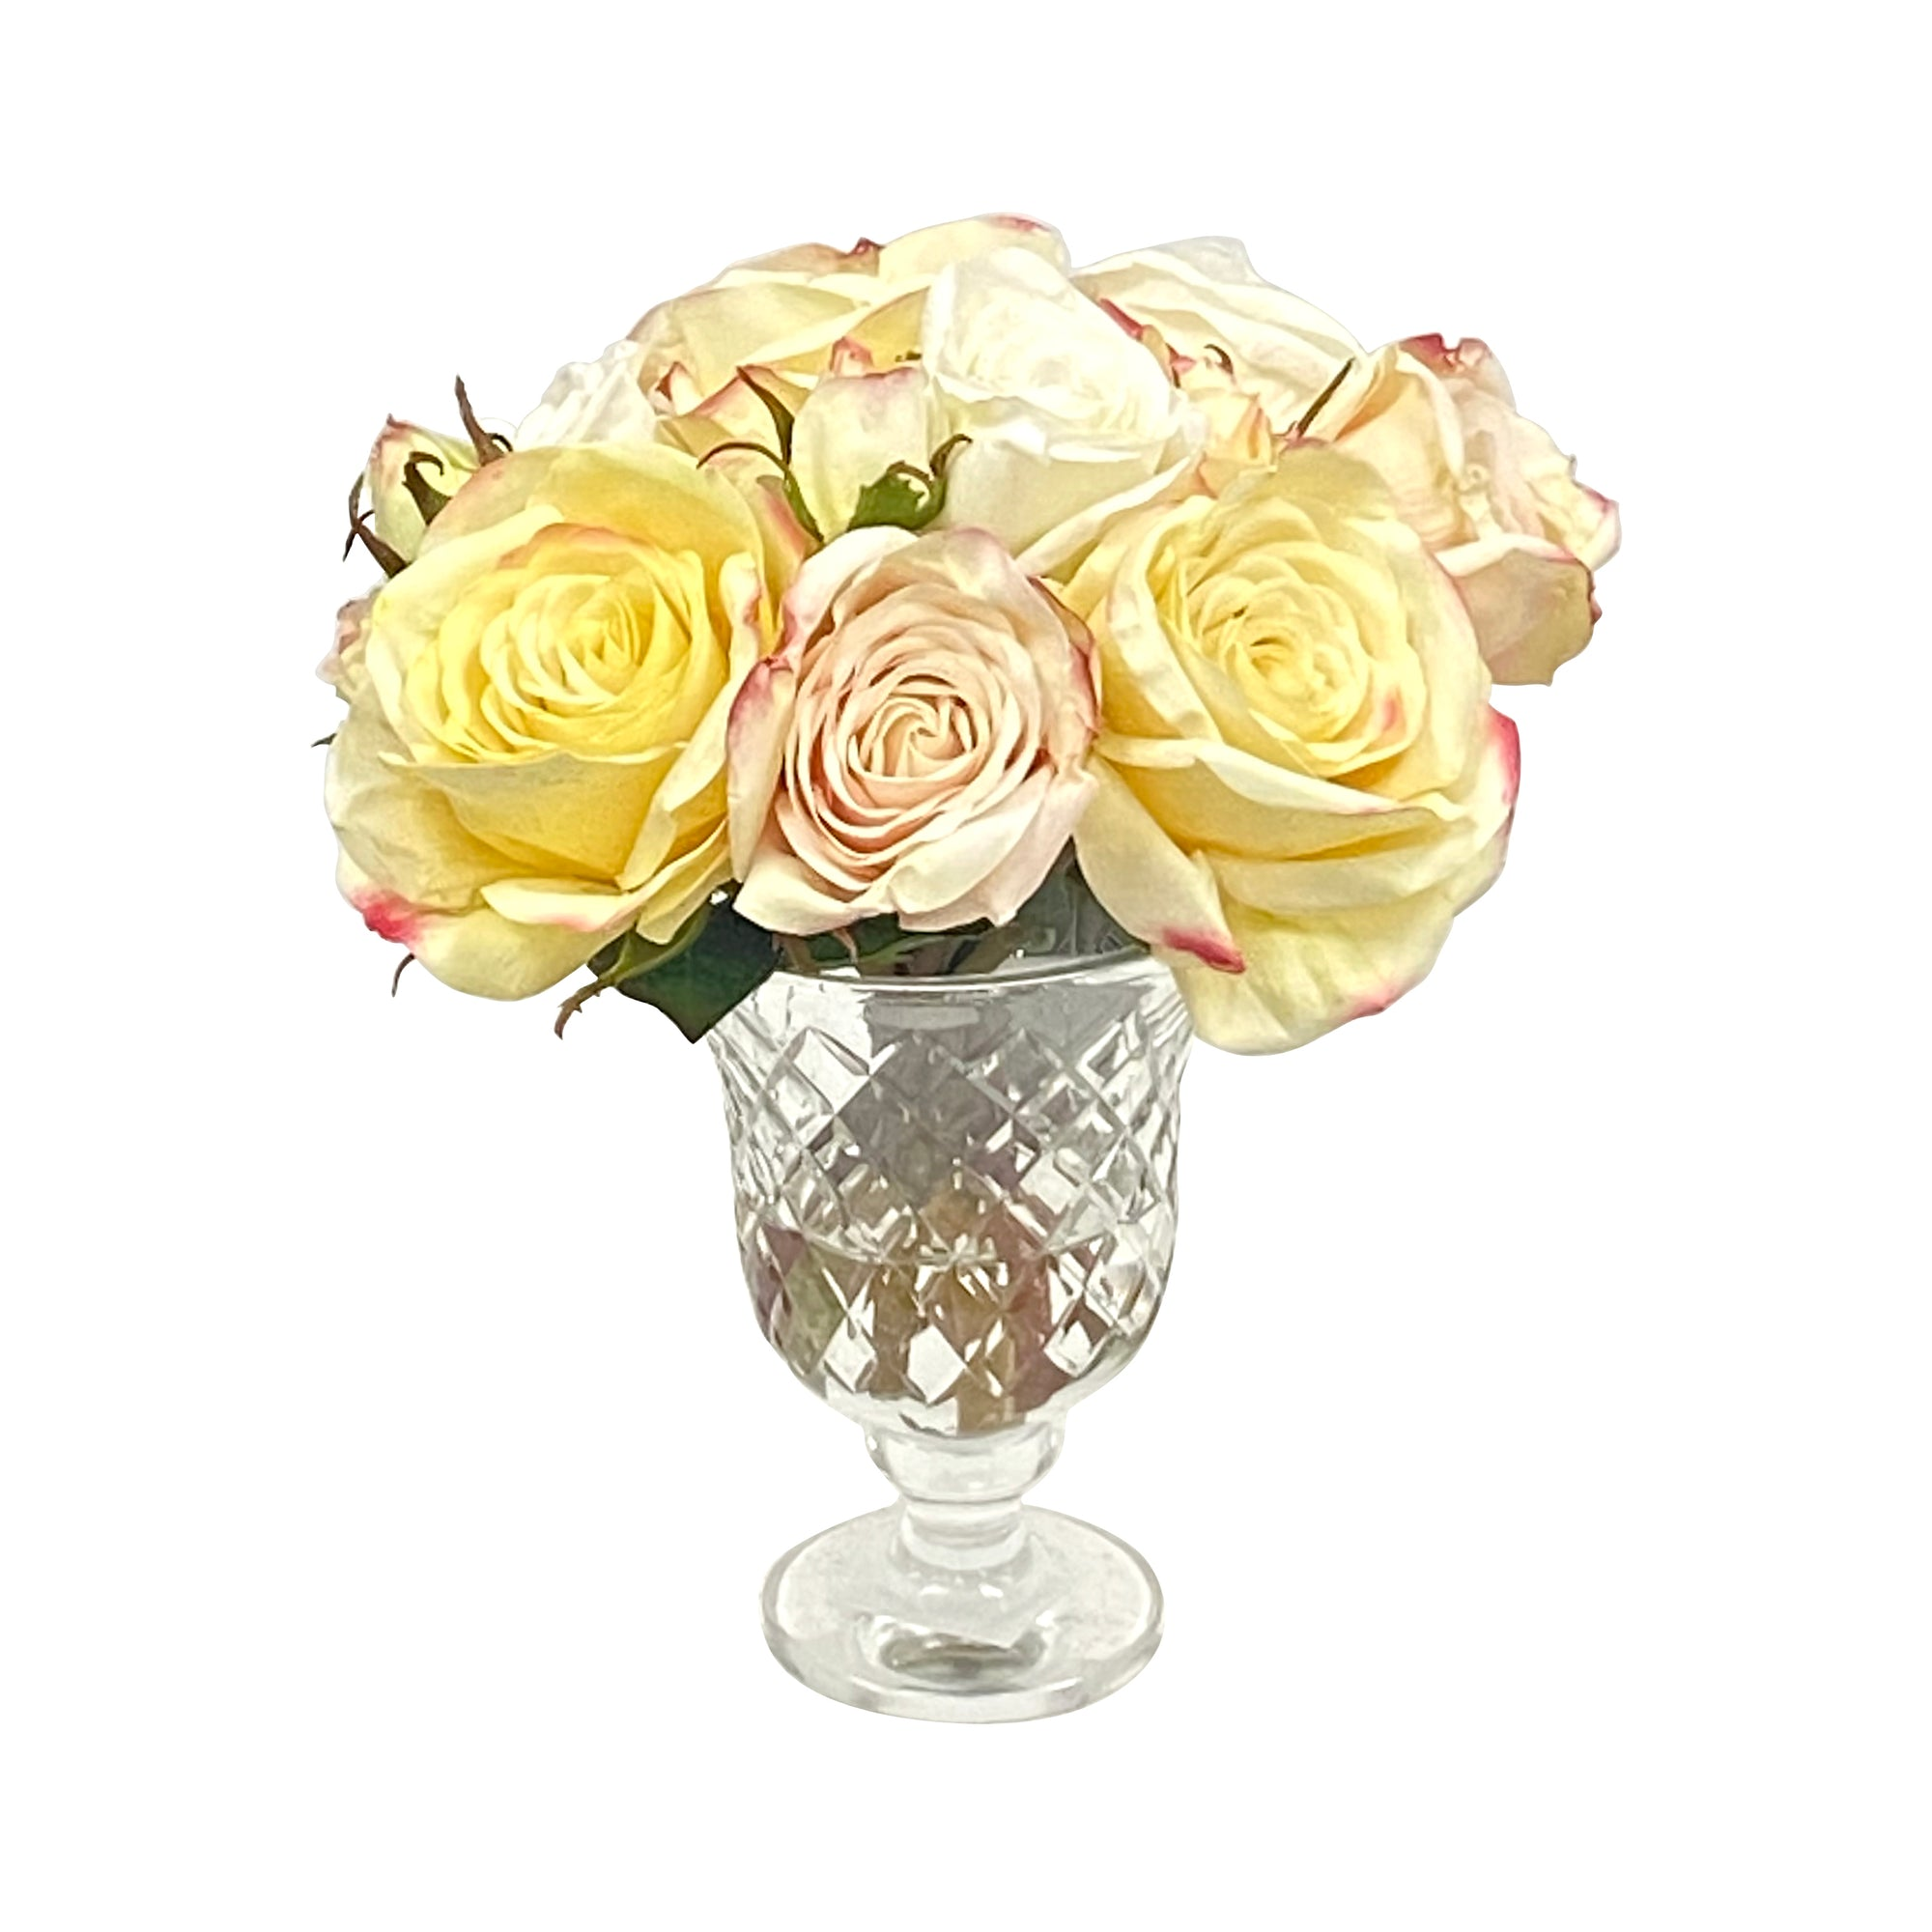 Realistic mixed roses in high-quality clear cut glass urn